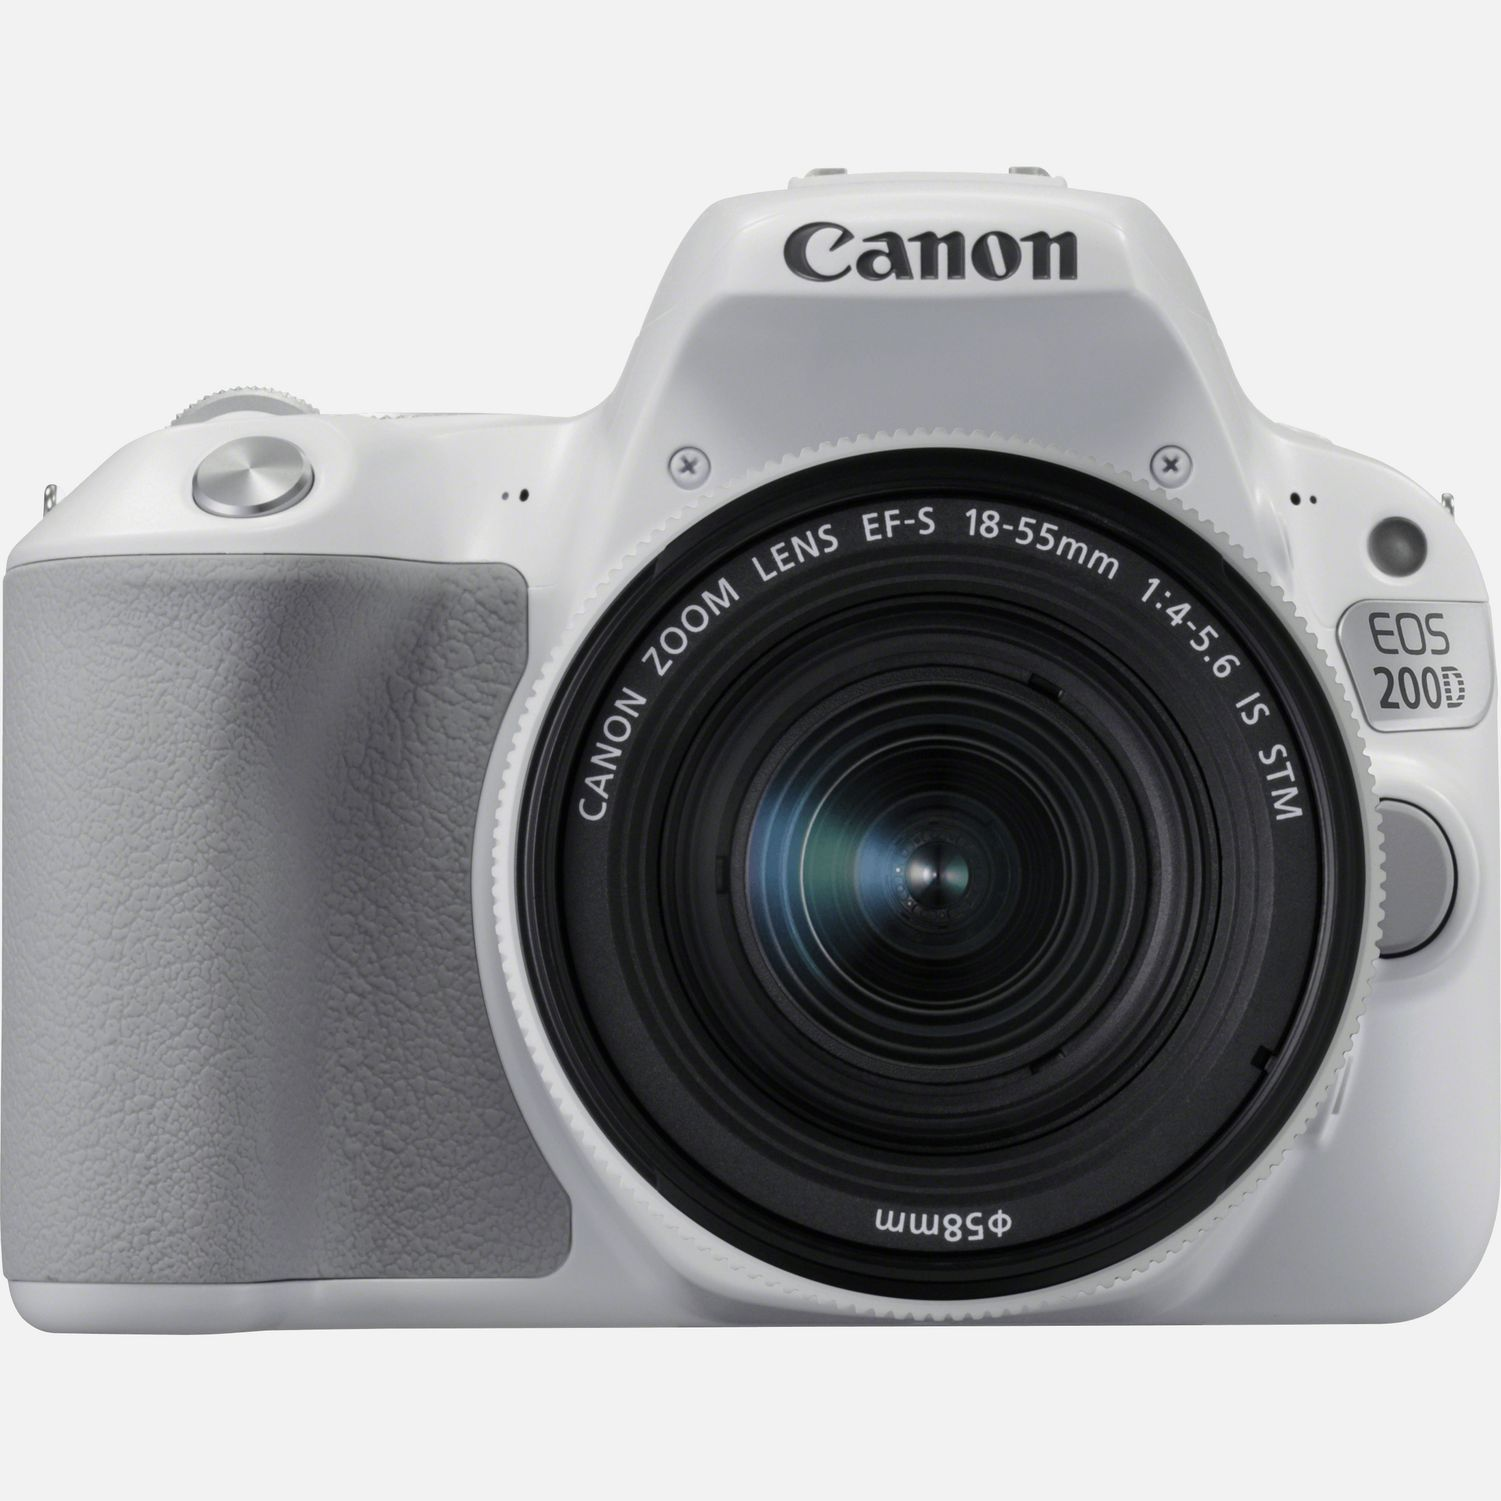 Image of Canon EOS 200D White and EF-S 18-55mm f/4-5.6 IS STM Lens Silver